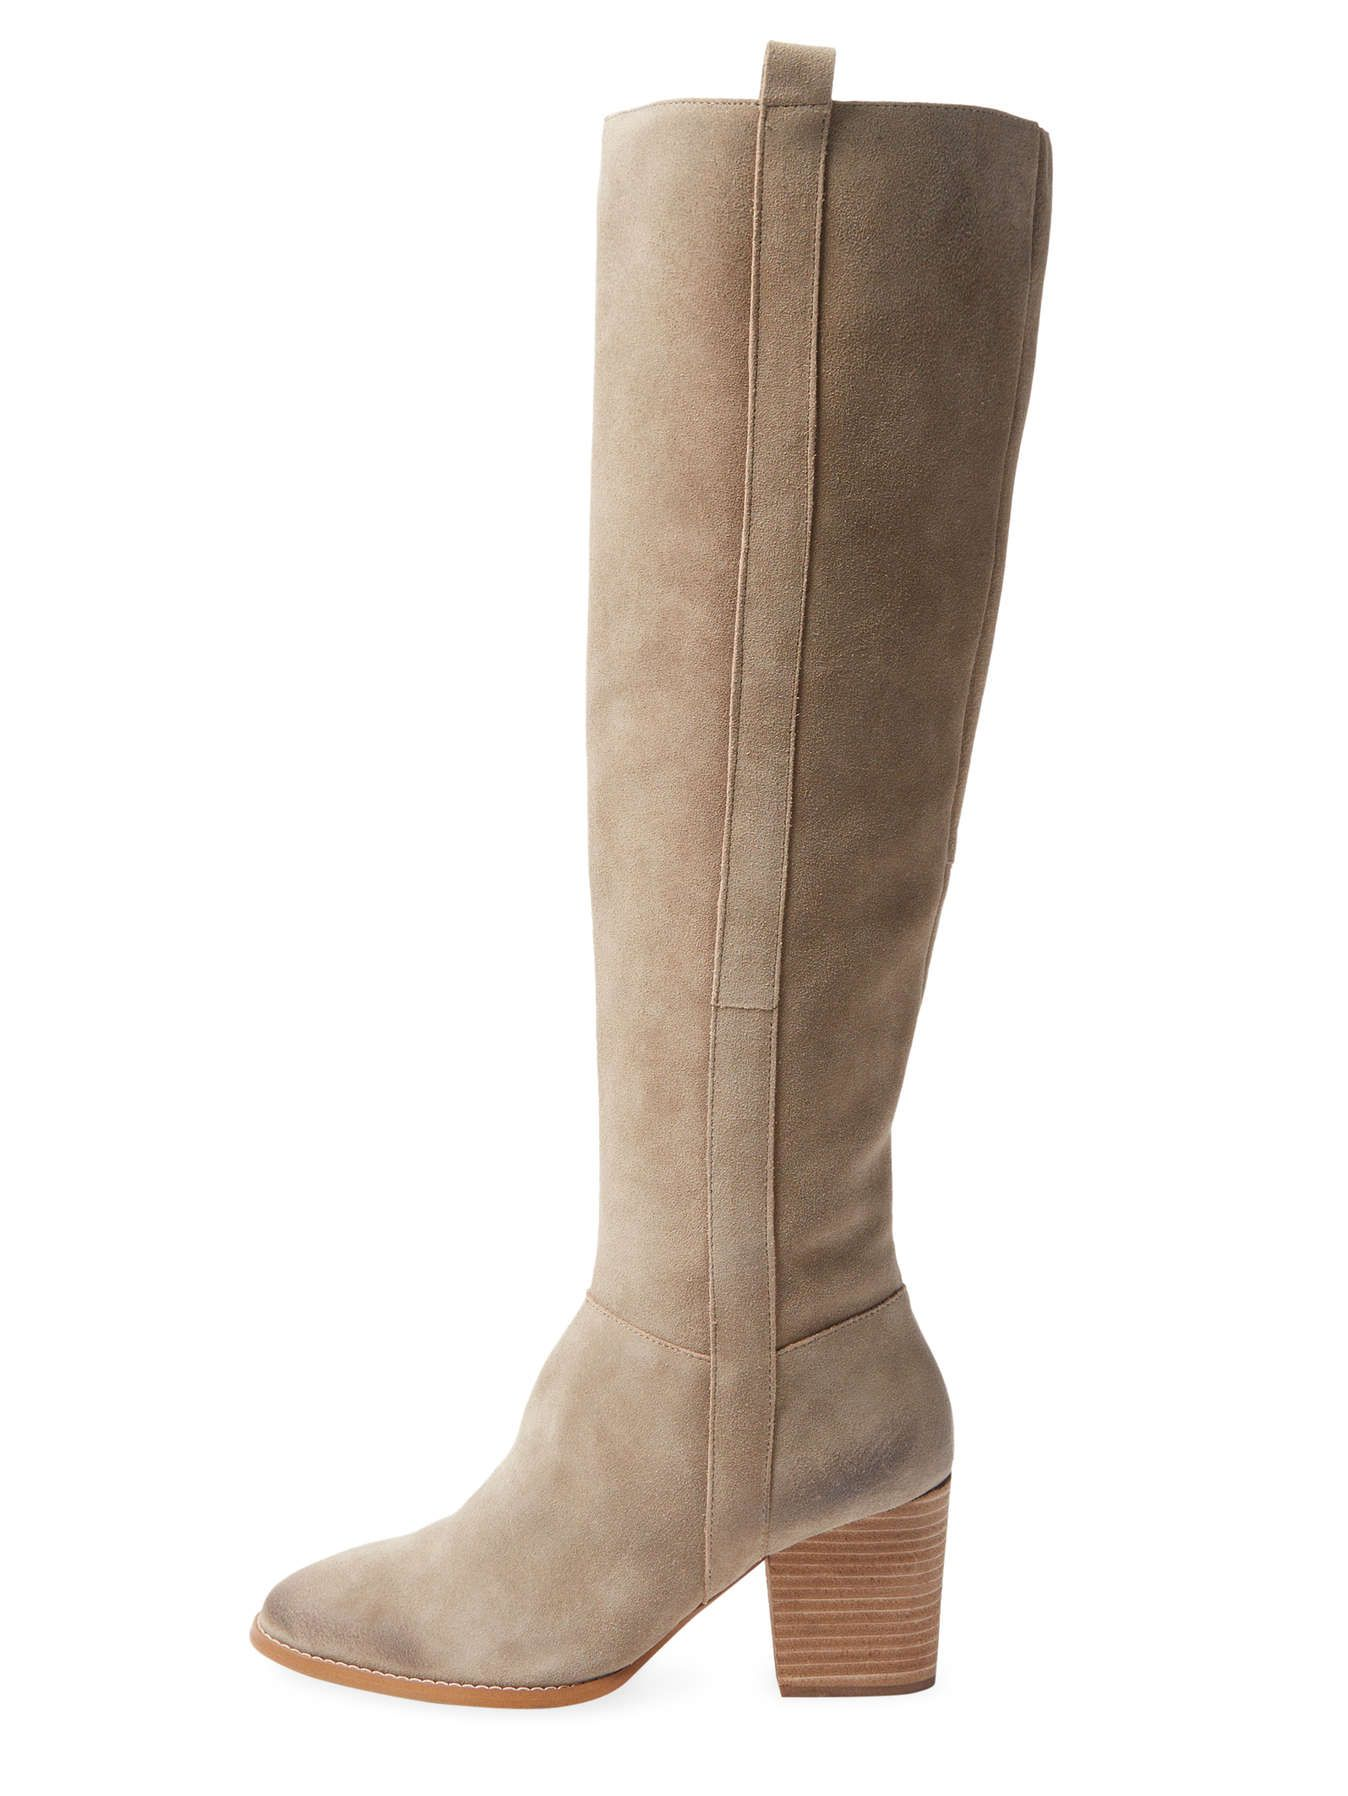 Wiley Tall Suede Boot by Atwell at Gilt